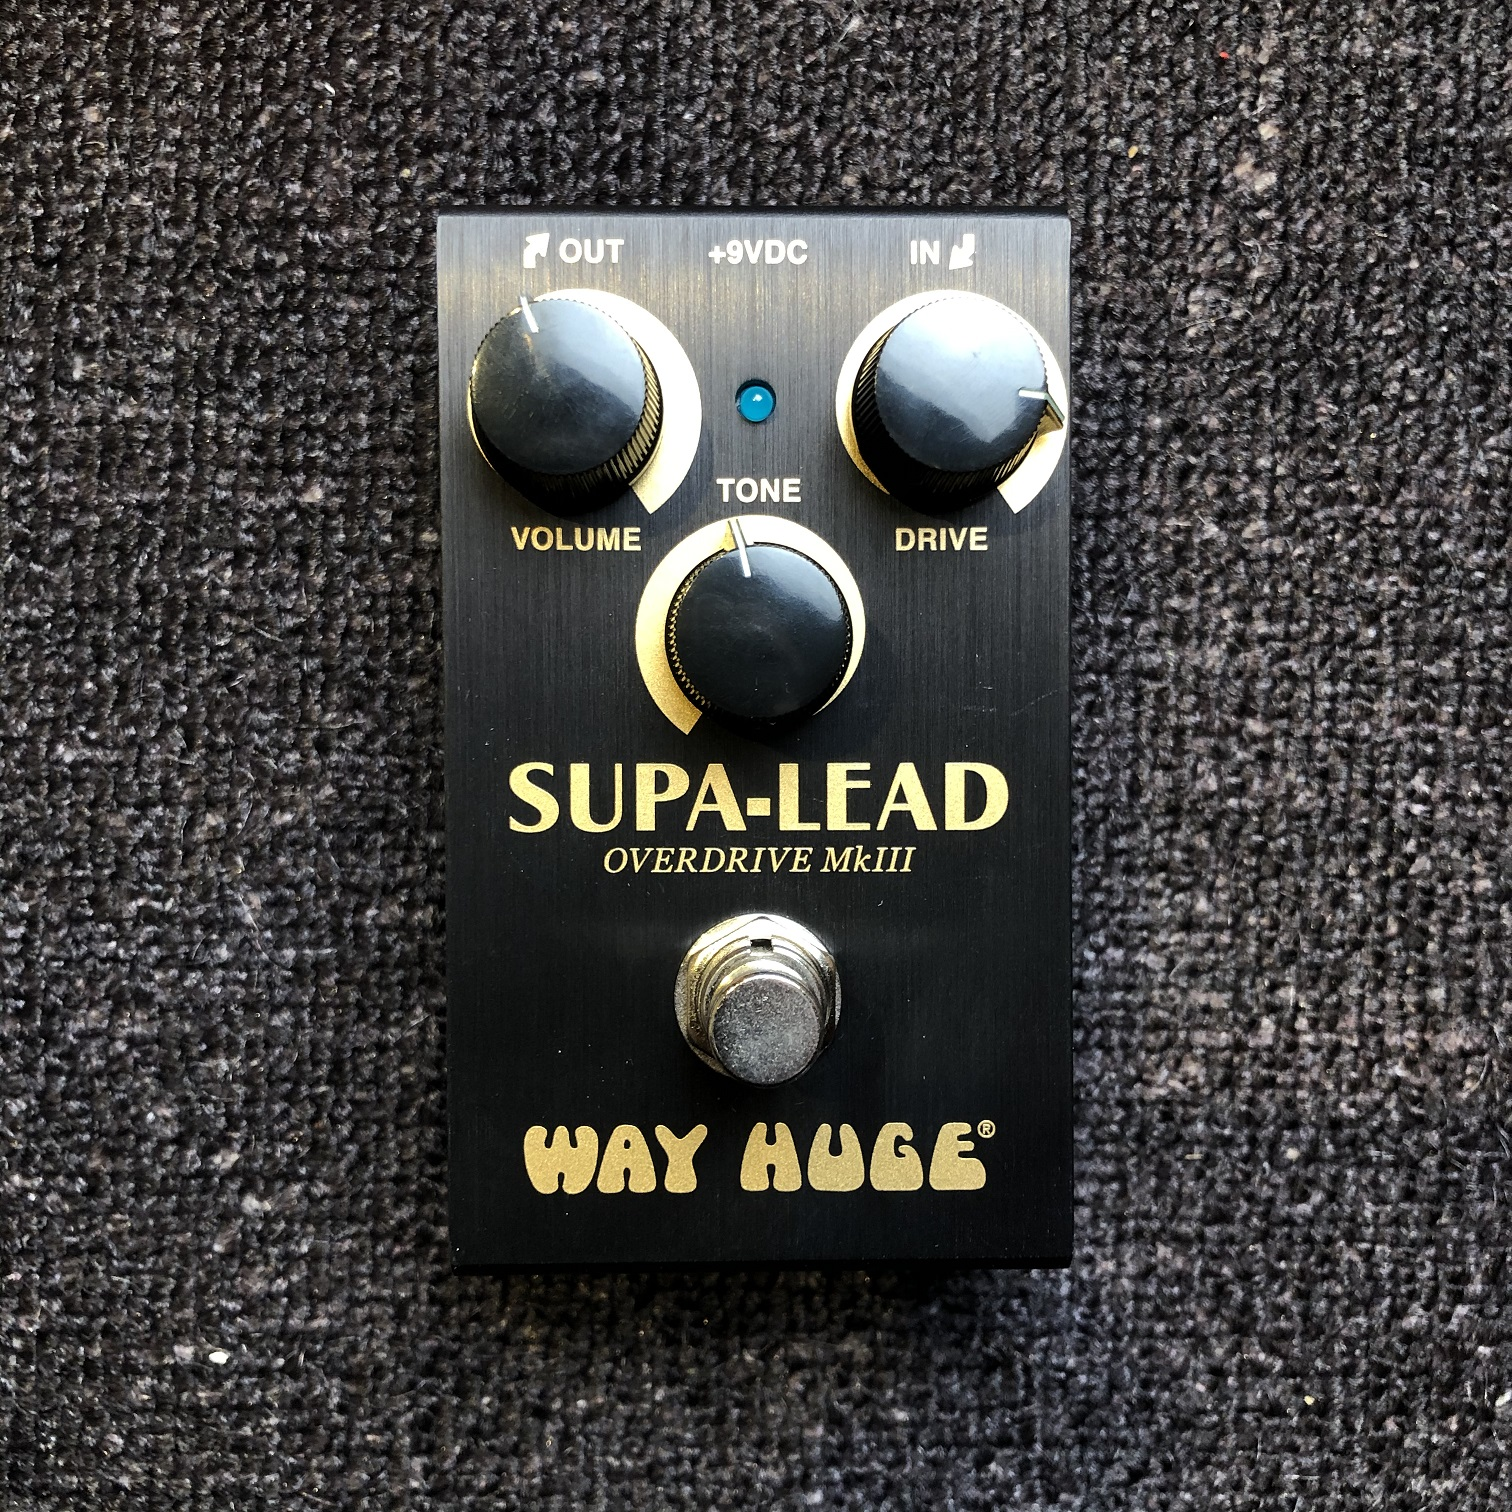 新年優惠 — Way Huge Super-Lead Overdrive MKIII